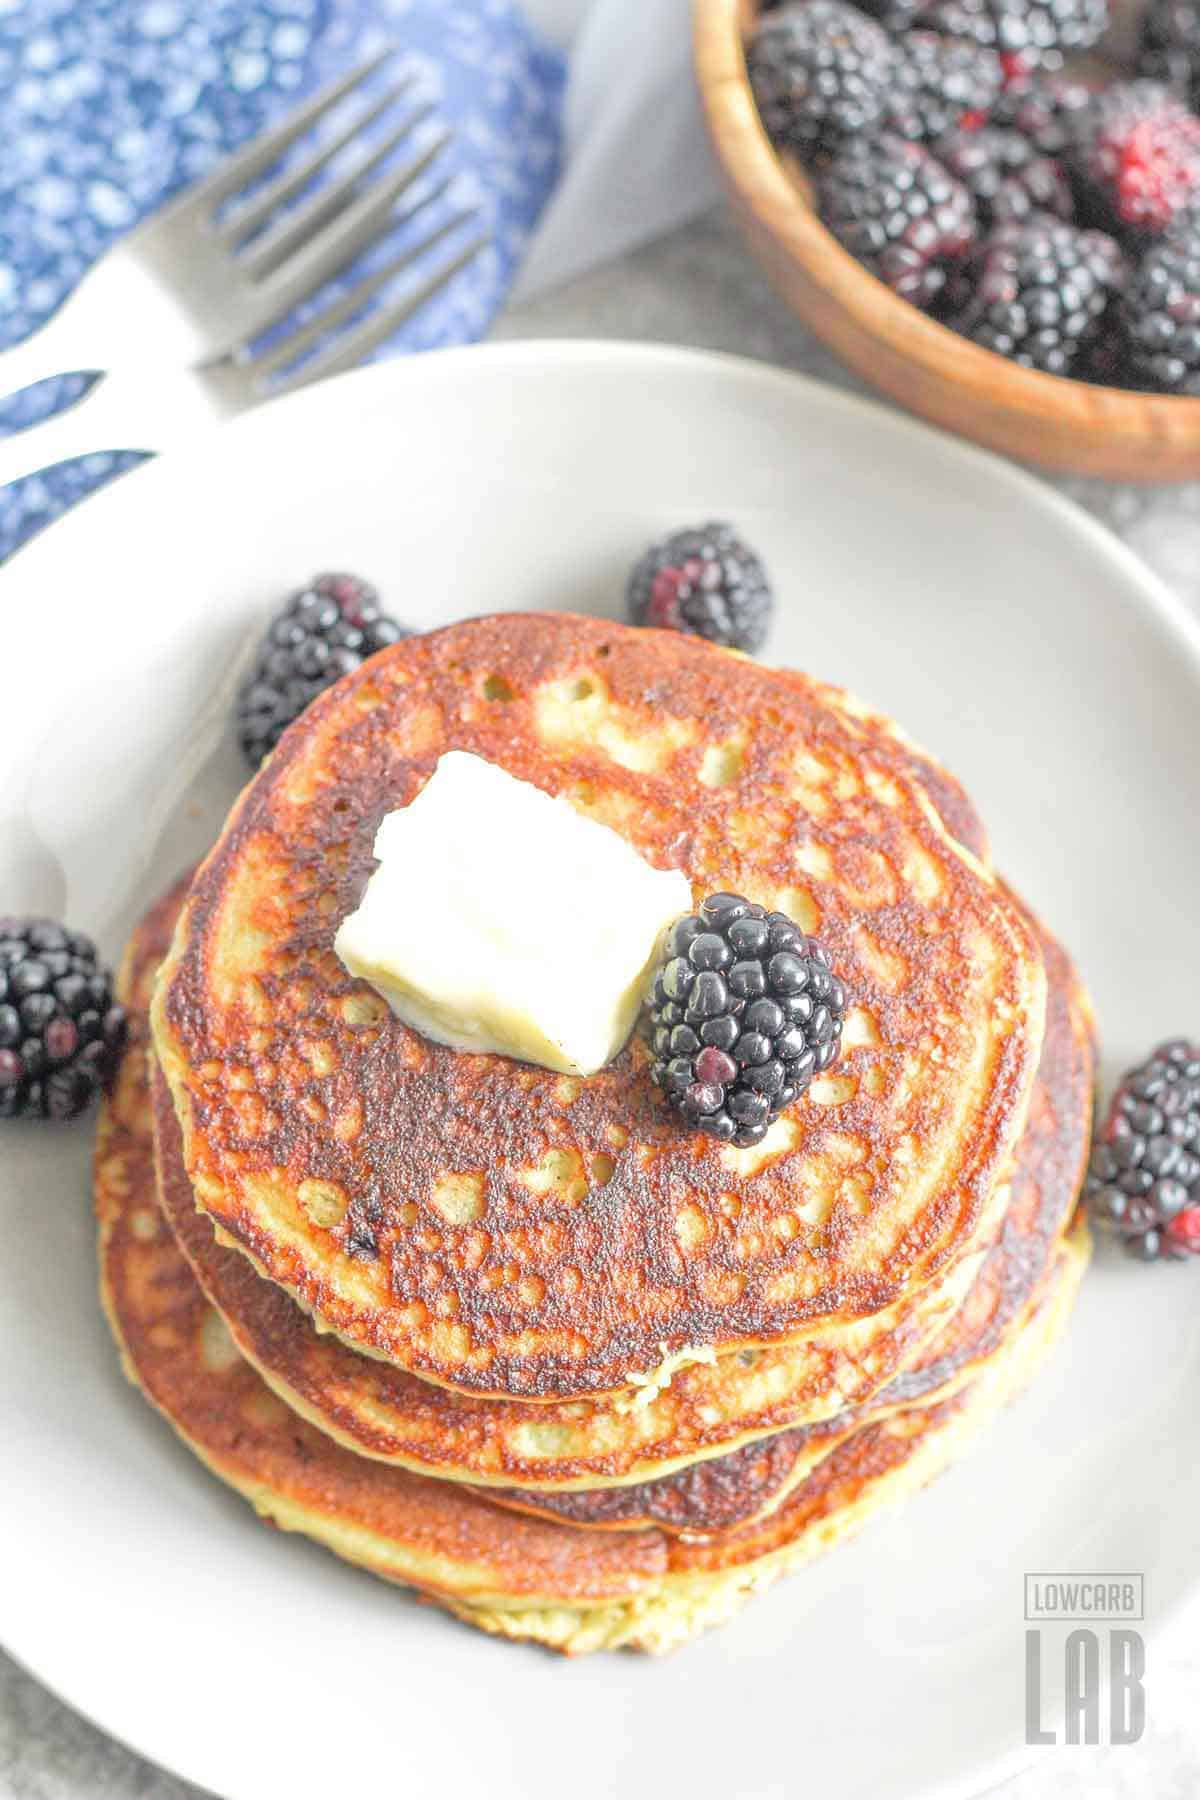 Low carb blackberry pancakes recipe done ready to eat